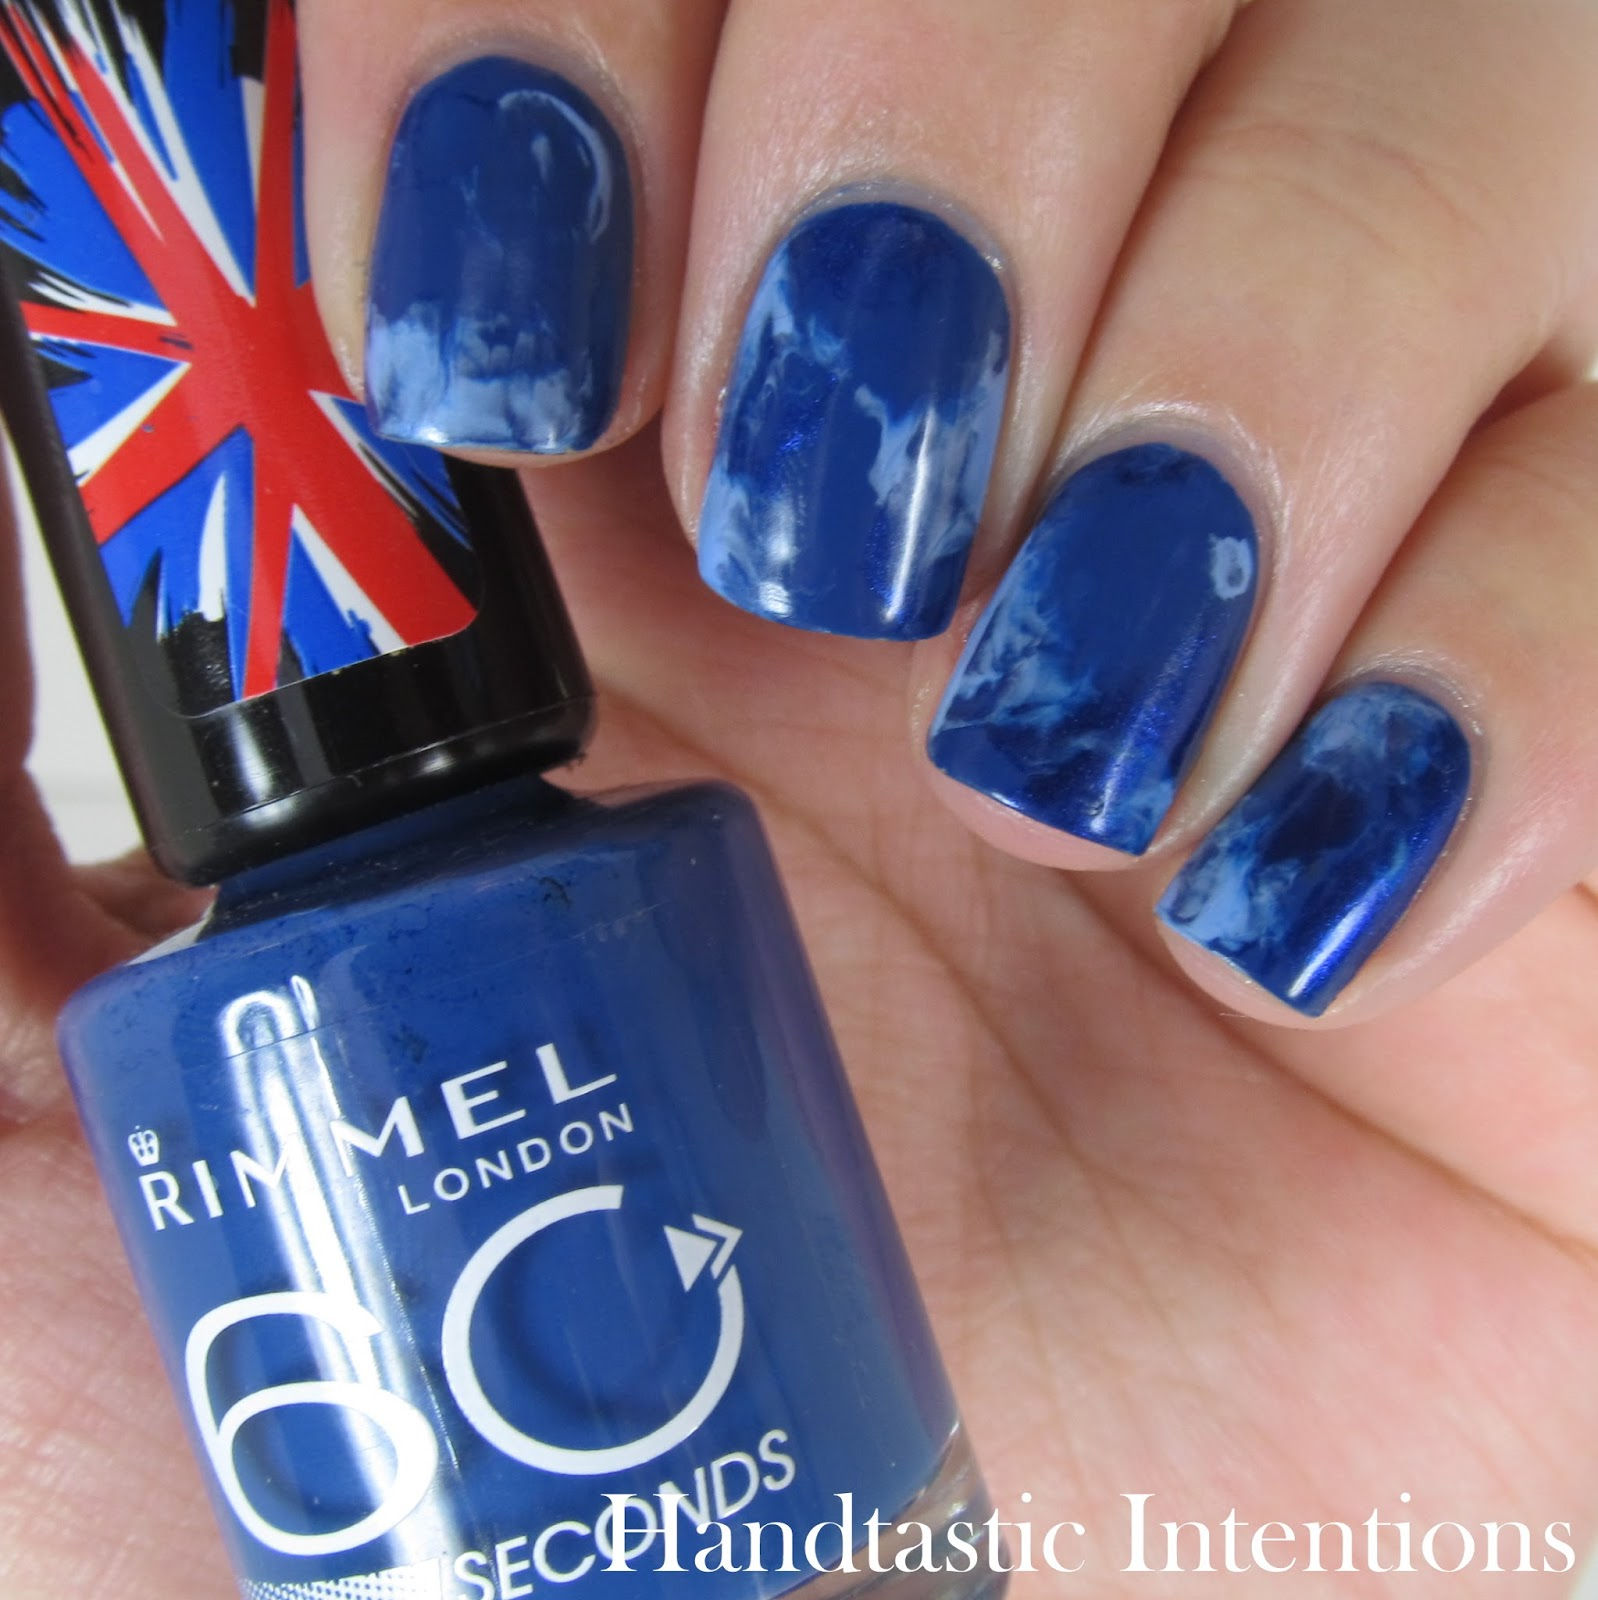 Handtastic Intentions: The Polished Bookworms: Nail Art Inspired by ...